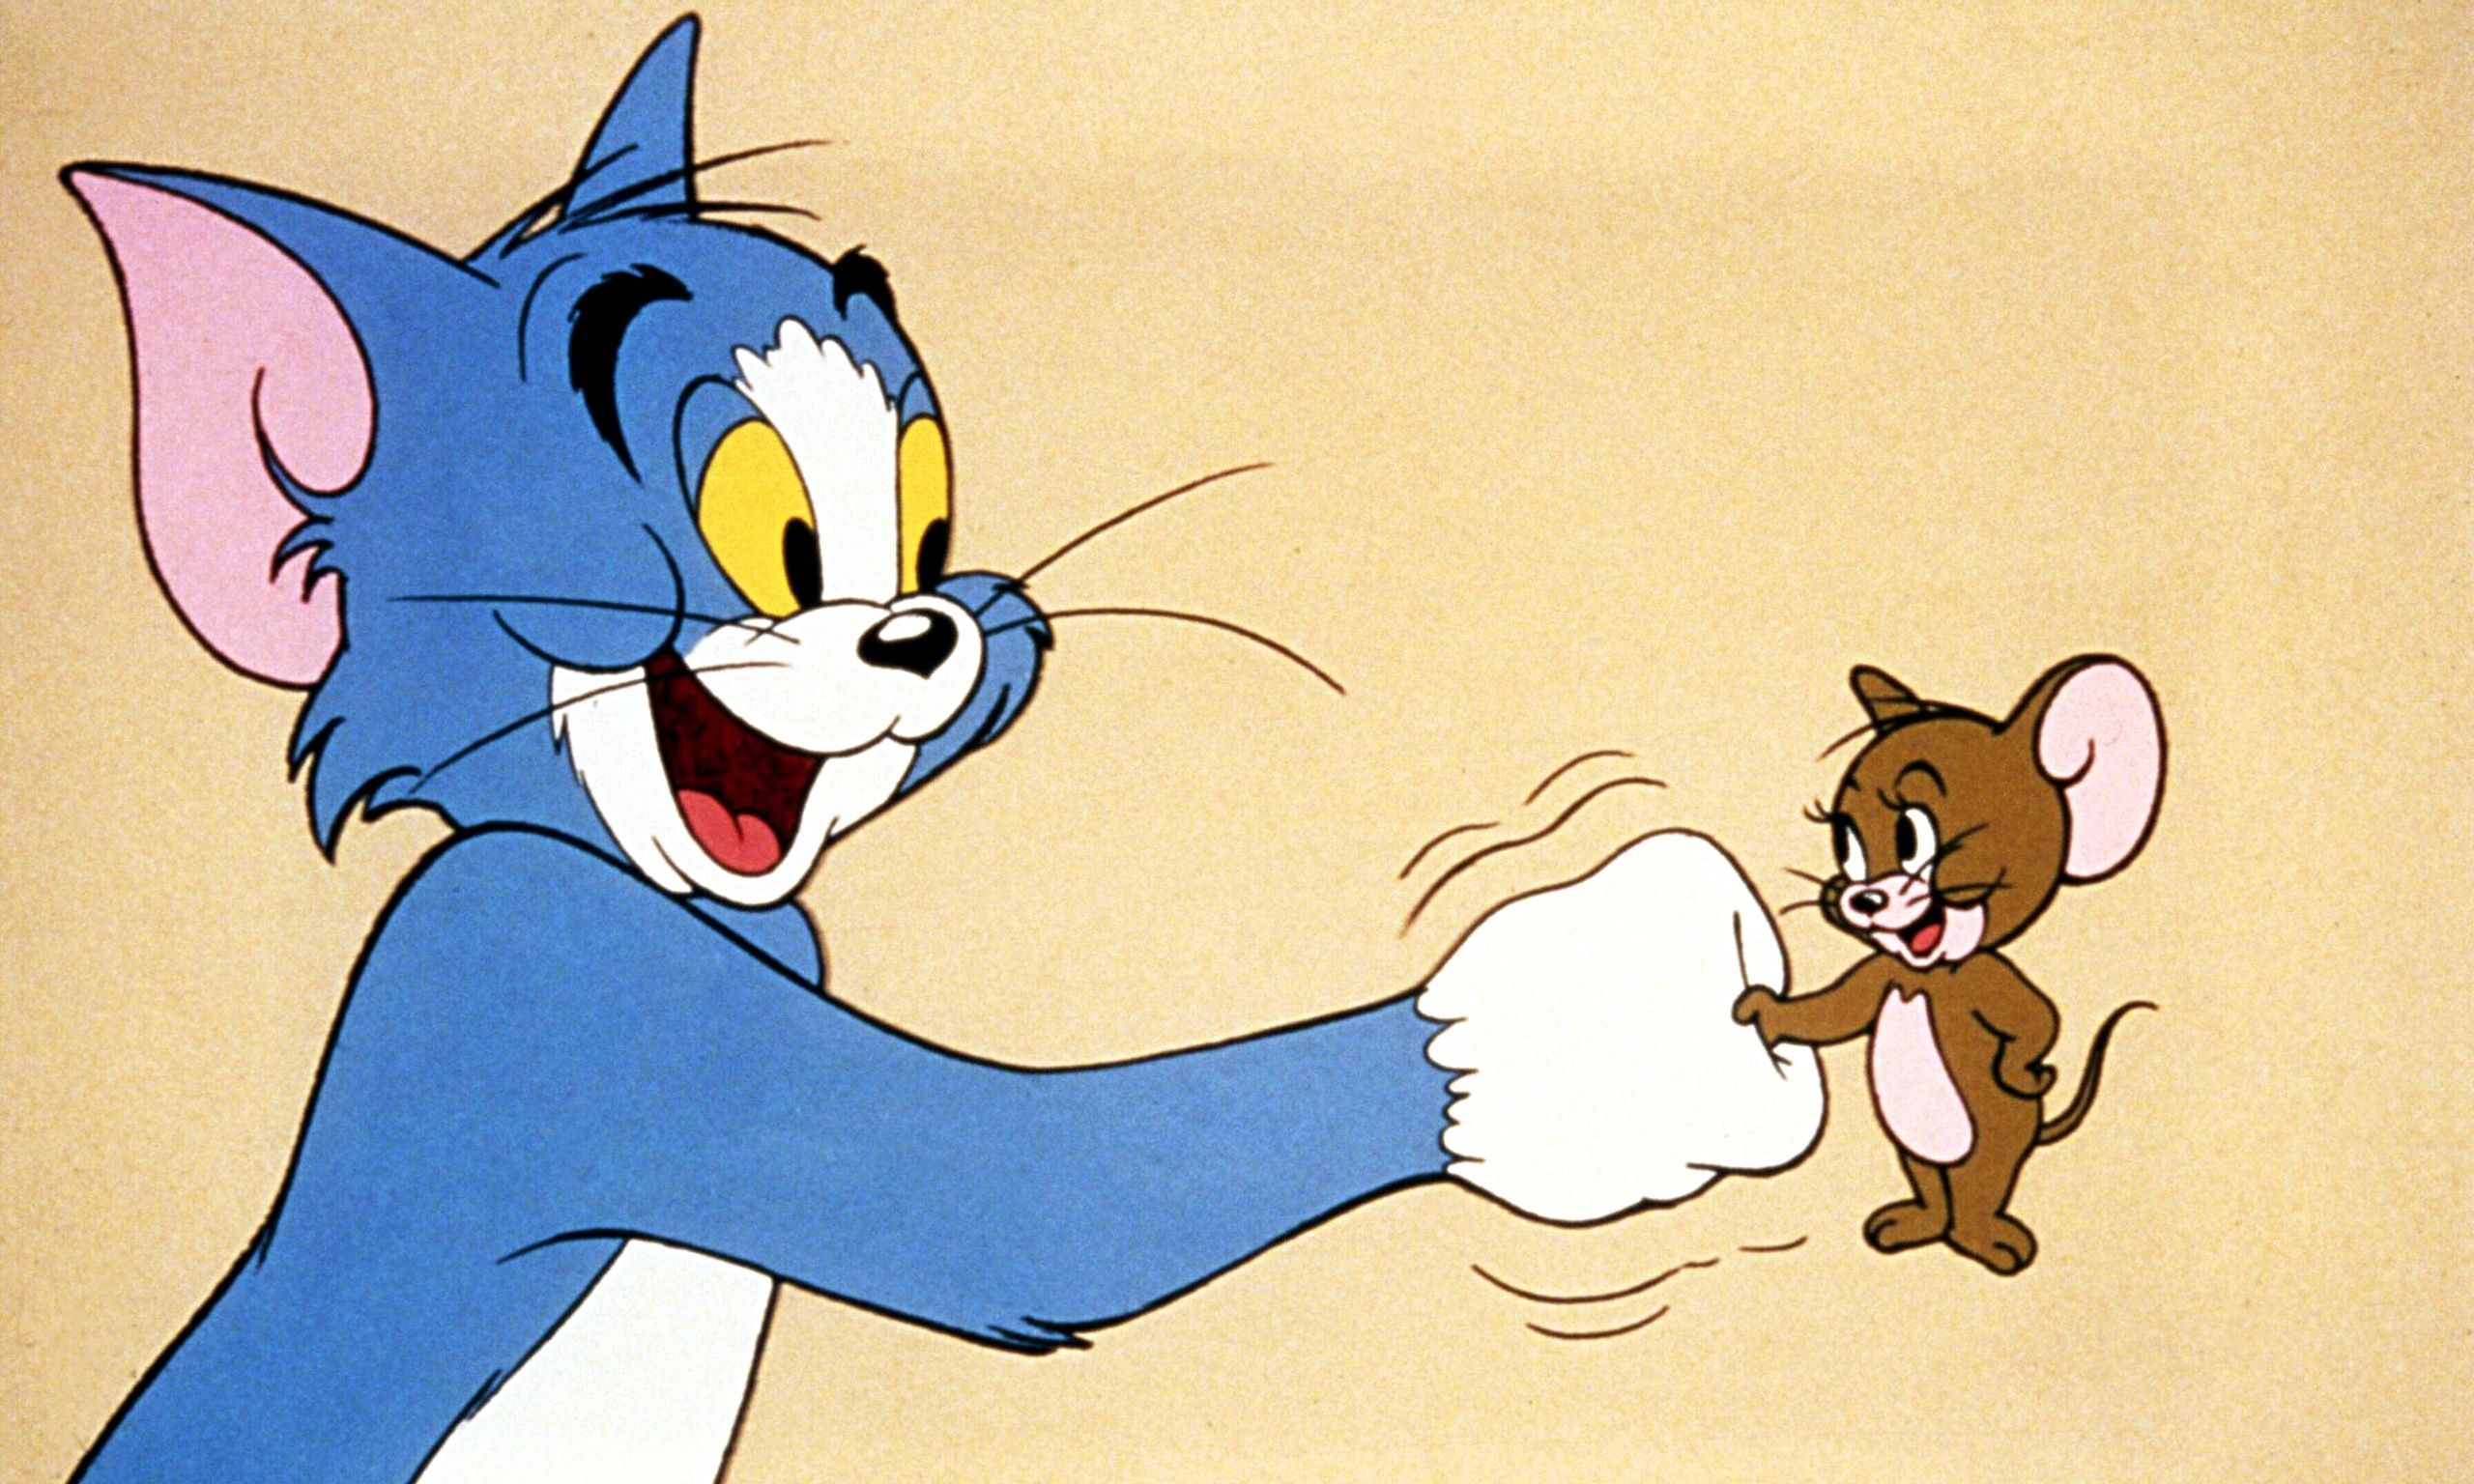 Tom and Jerry Laptop Wallpapers - Top Free Tom and Jerry Laptop Backgrounds  - WallpaperAccess